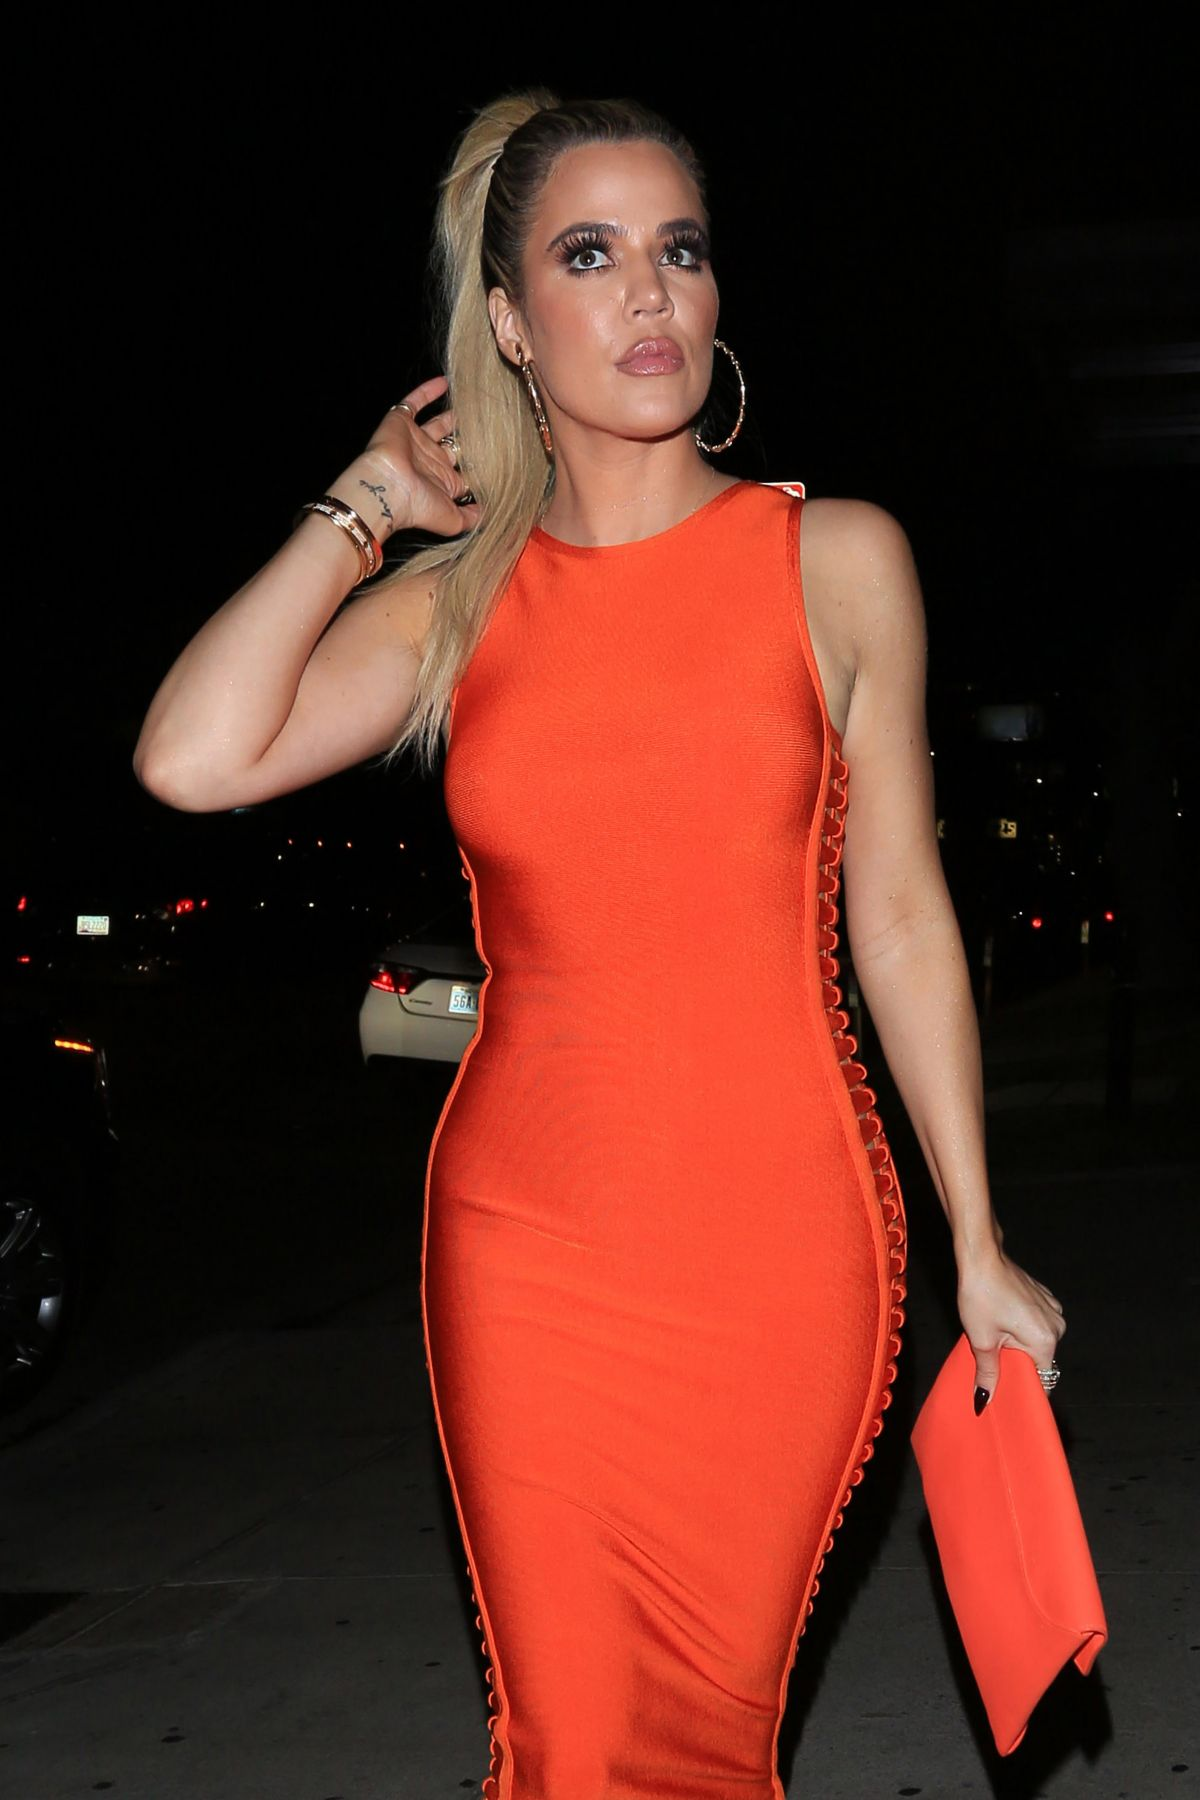 khloe kardashian - photo #11